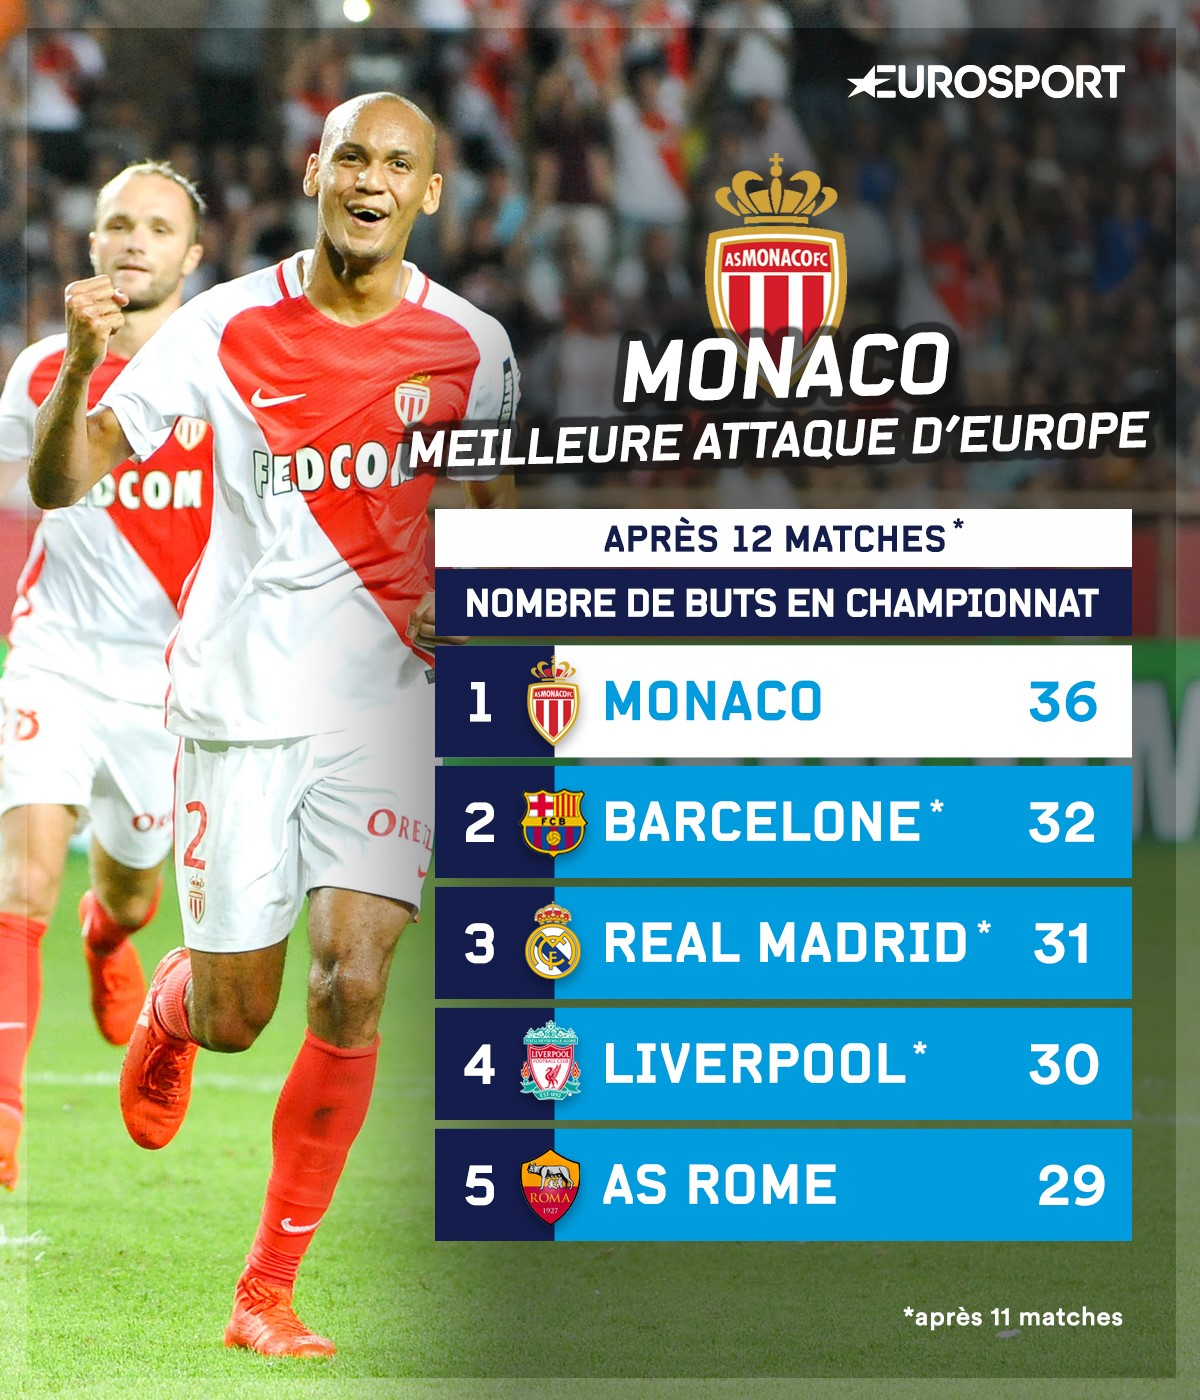 Infographie : l'attaque de Monaco plus efficace que celle du Barça et du Real Madrid.